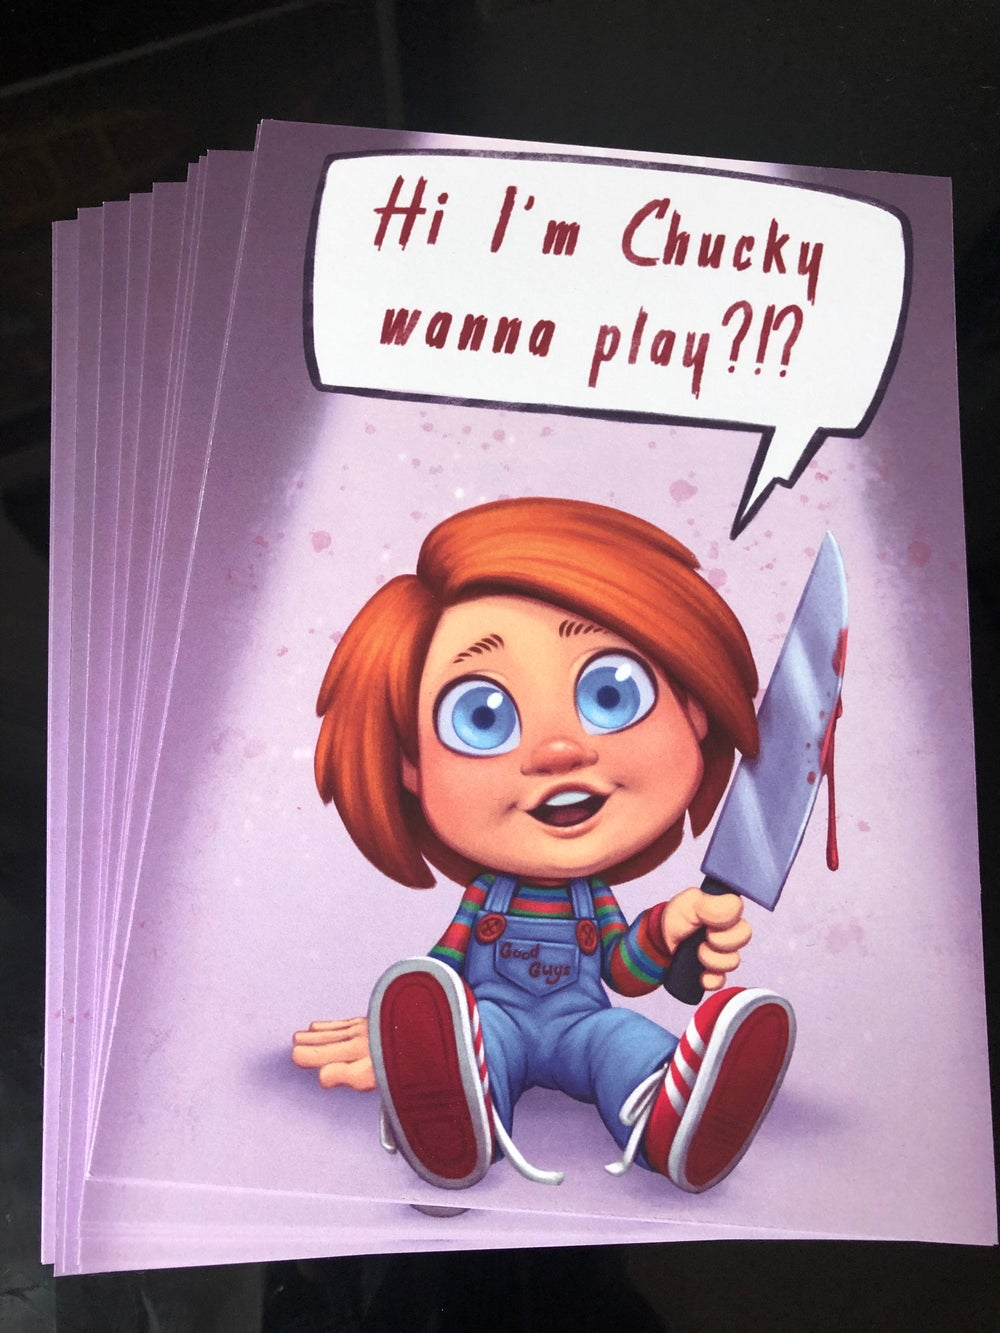 Want to play? (print)